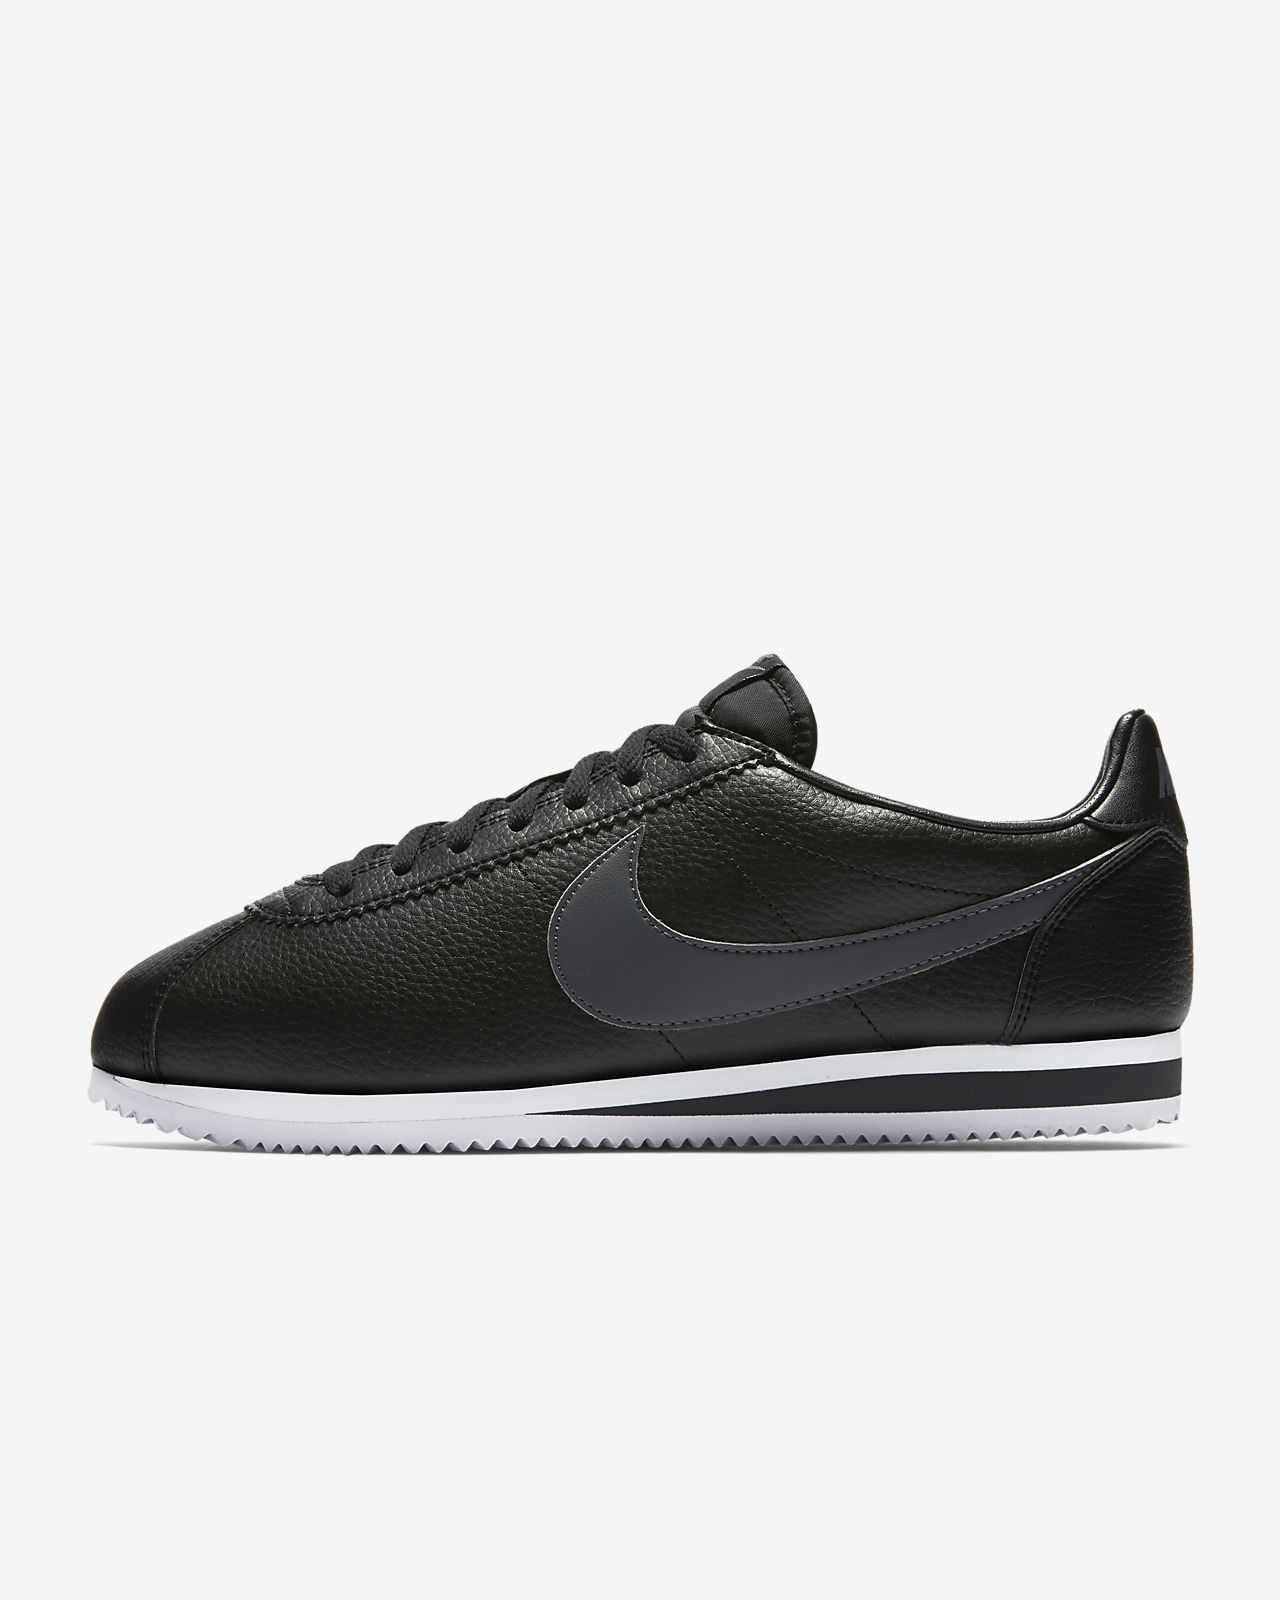 promo code 30086 80bb6 Chaussure Nike Classic Cortez pour Homme